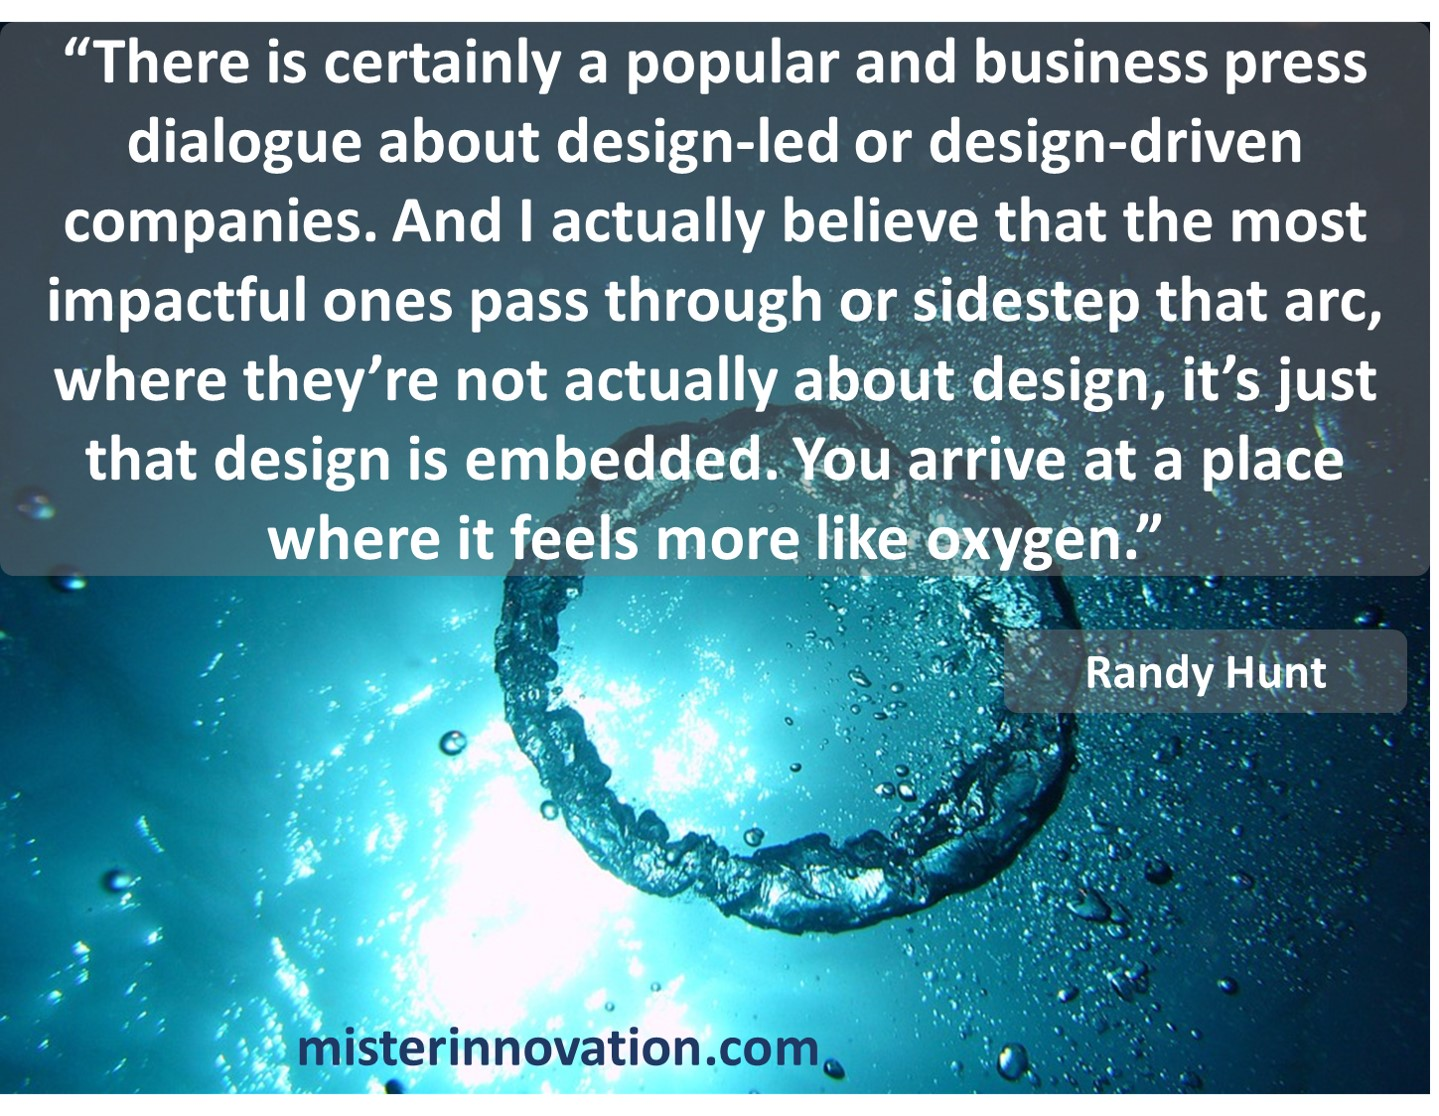 Randy Hunt quote on design driven innovation